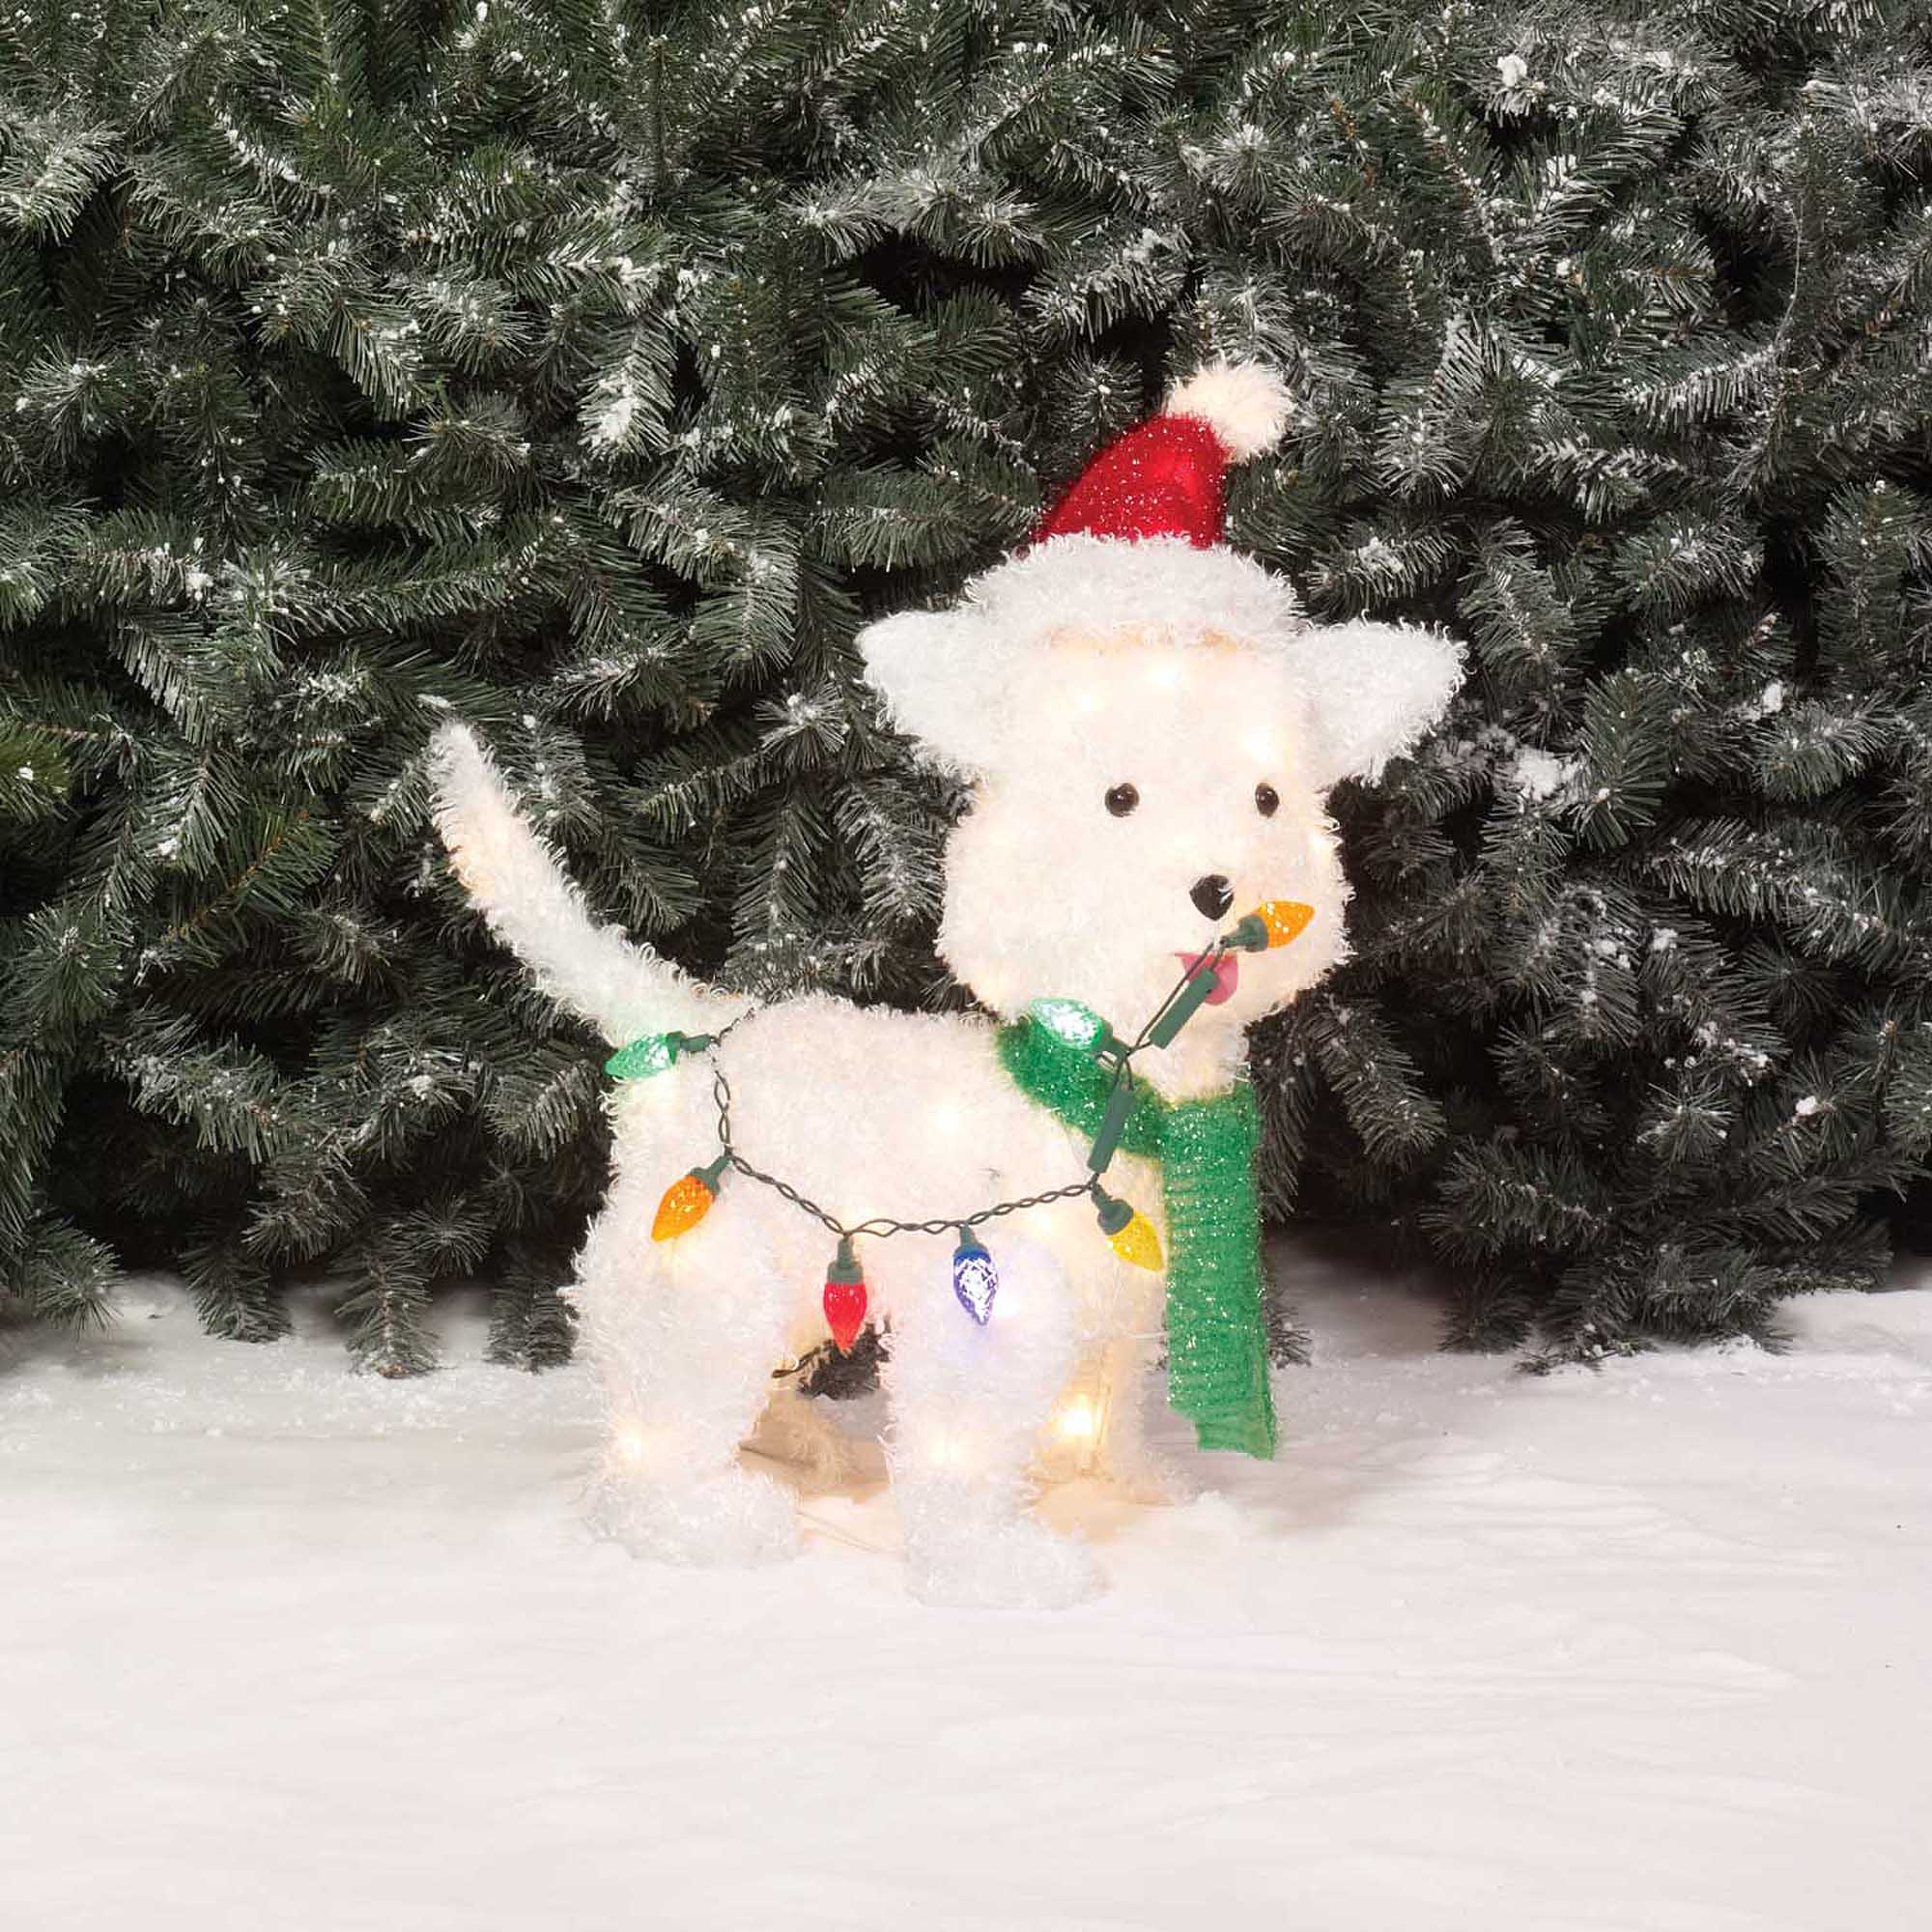 holiday time christmas decor 24 fluffy dog light sculpture walmartcom - Walmart Christmas Lawn Decorations